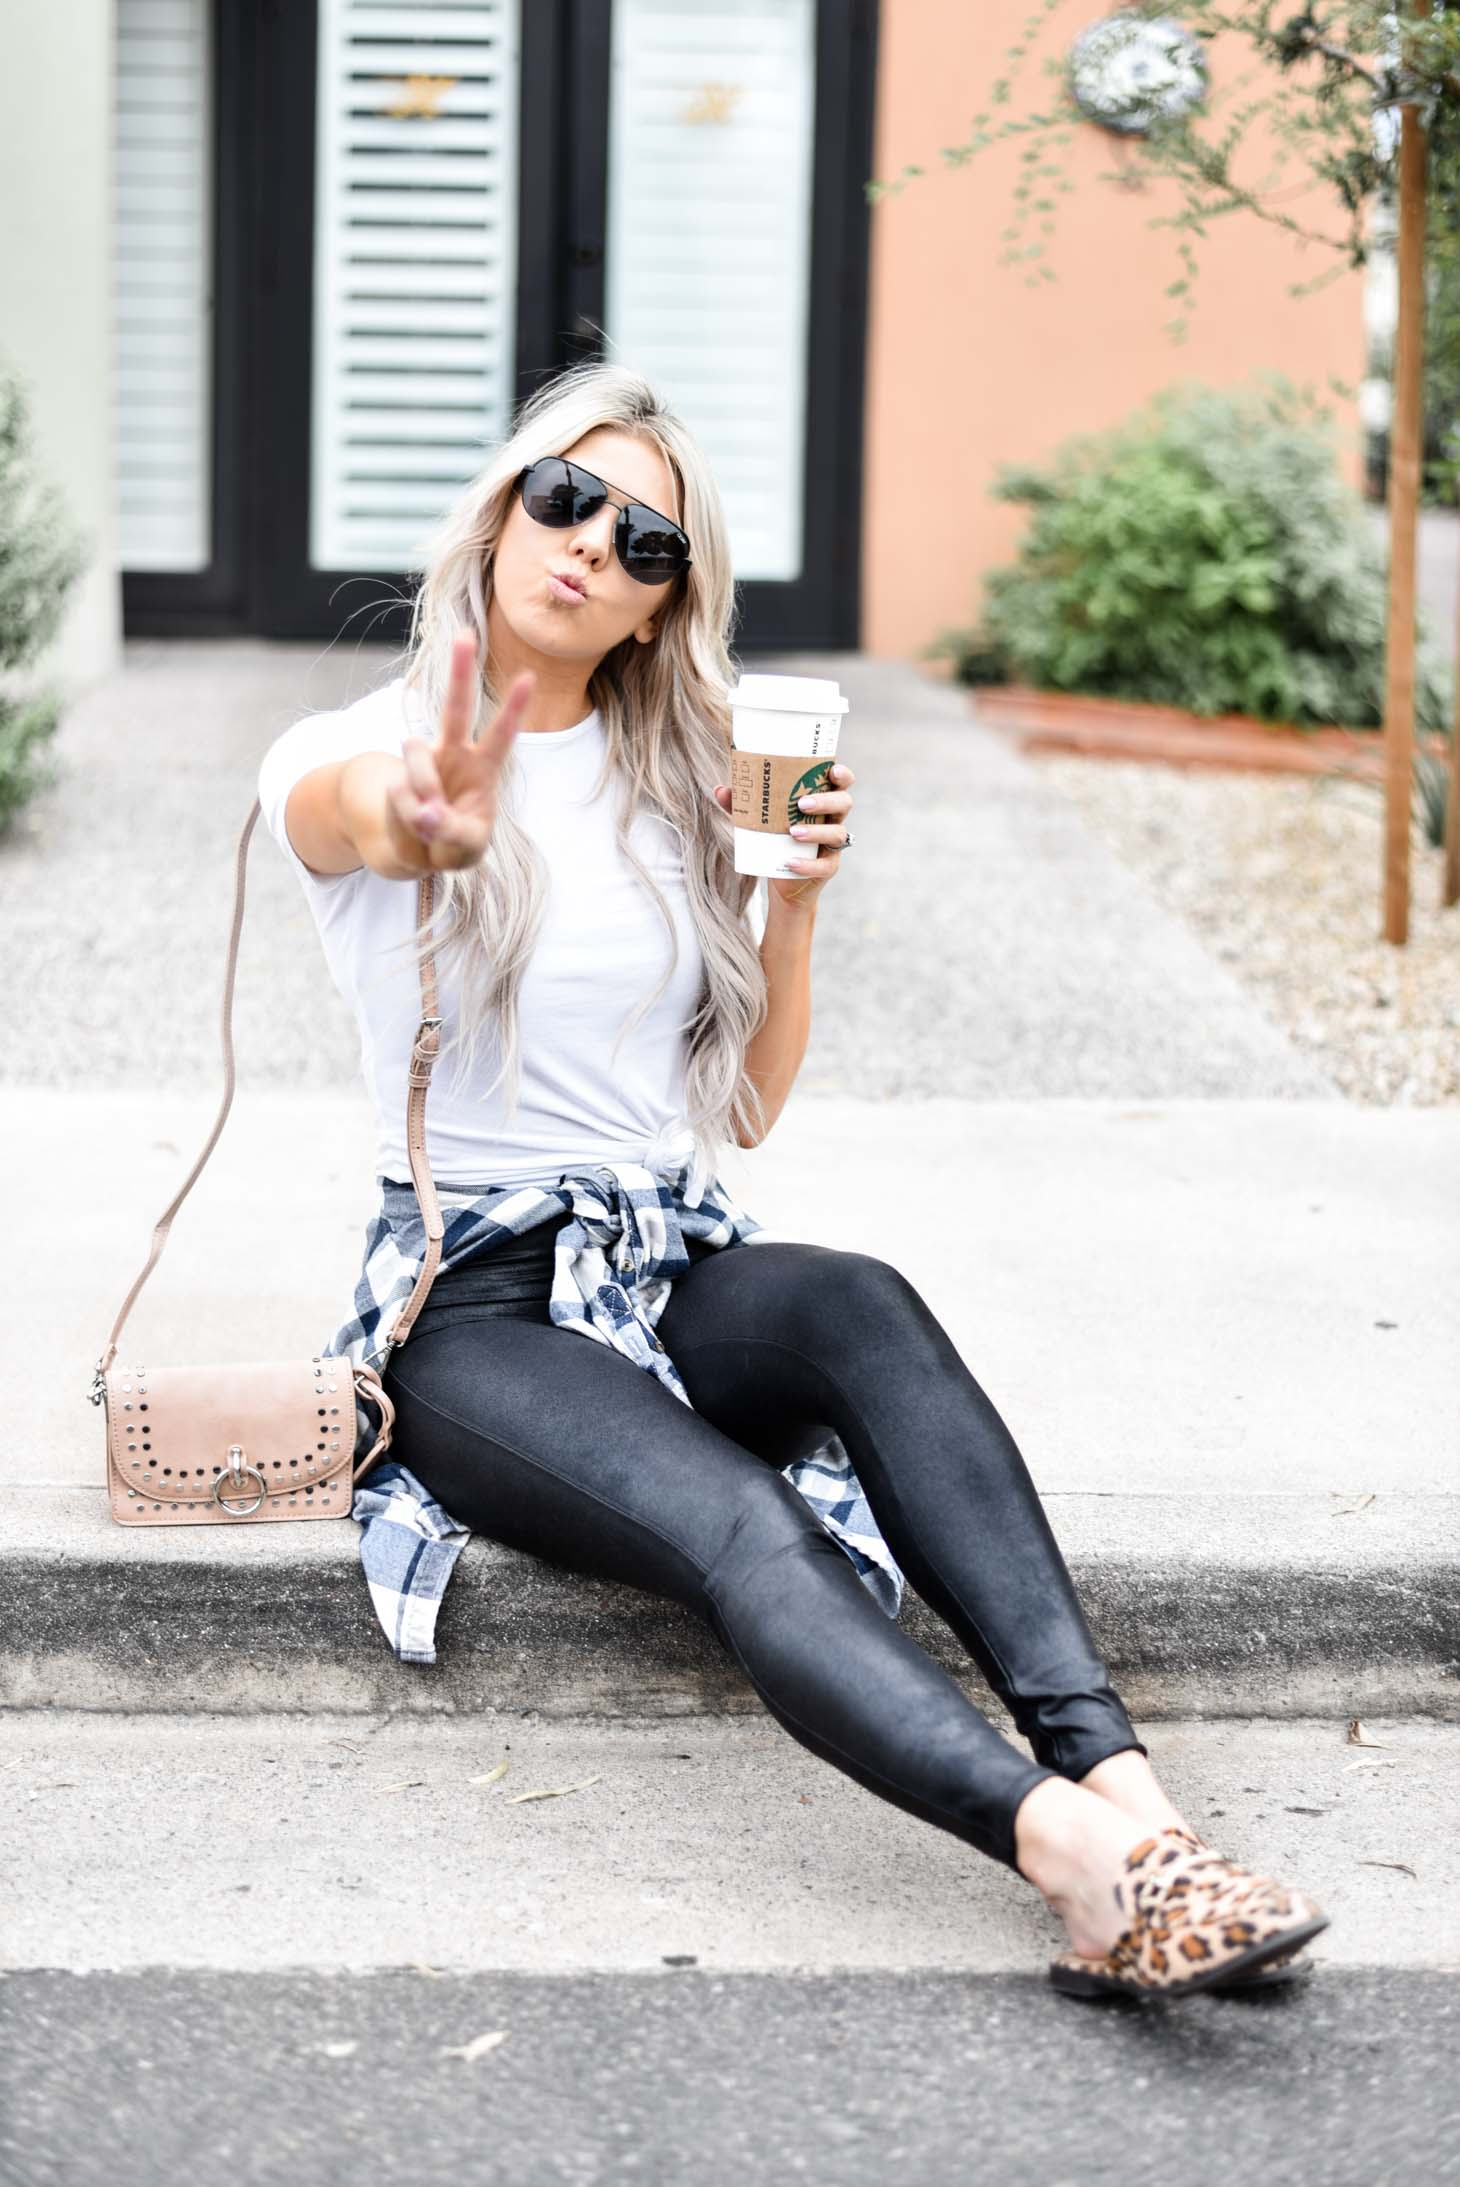 Erin Elizabeth of Wink and a Twirl shares her review on the Spanx leggings